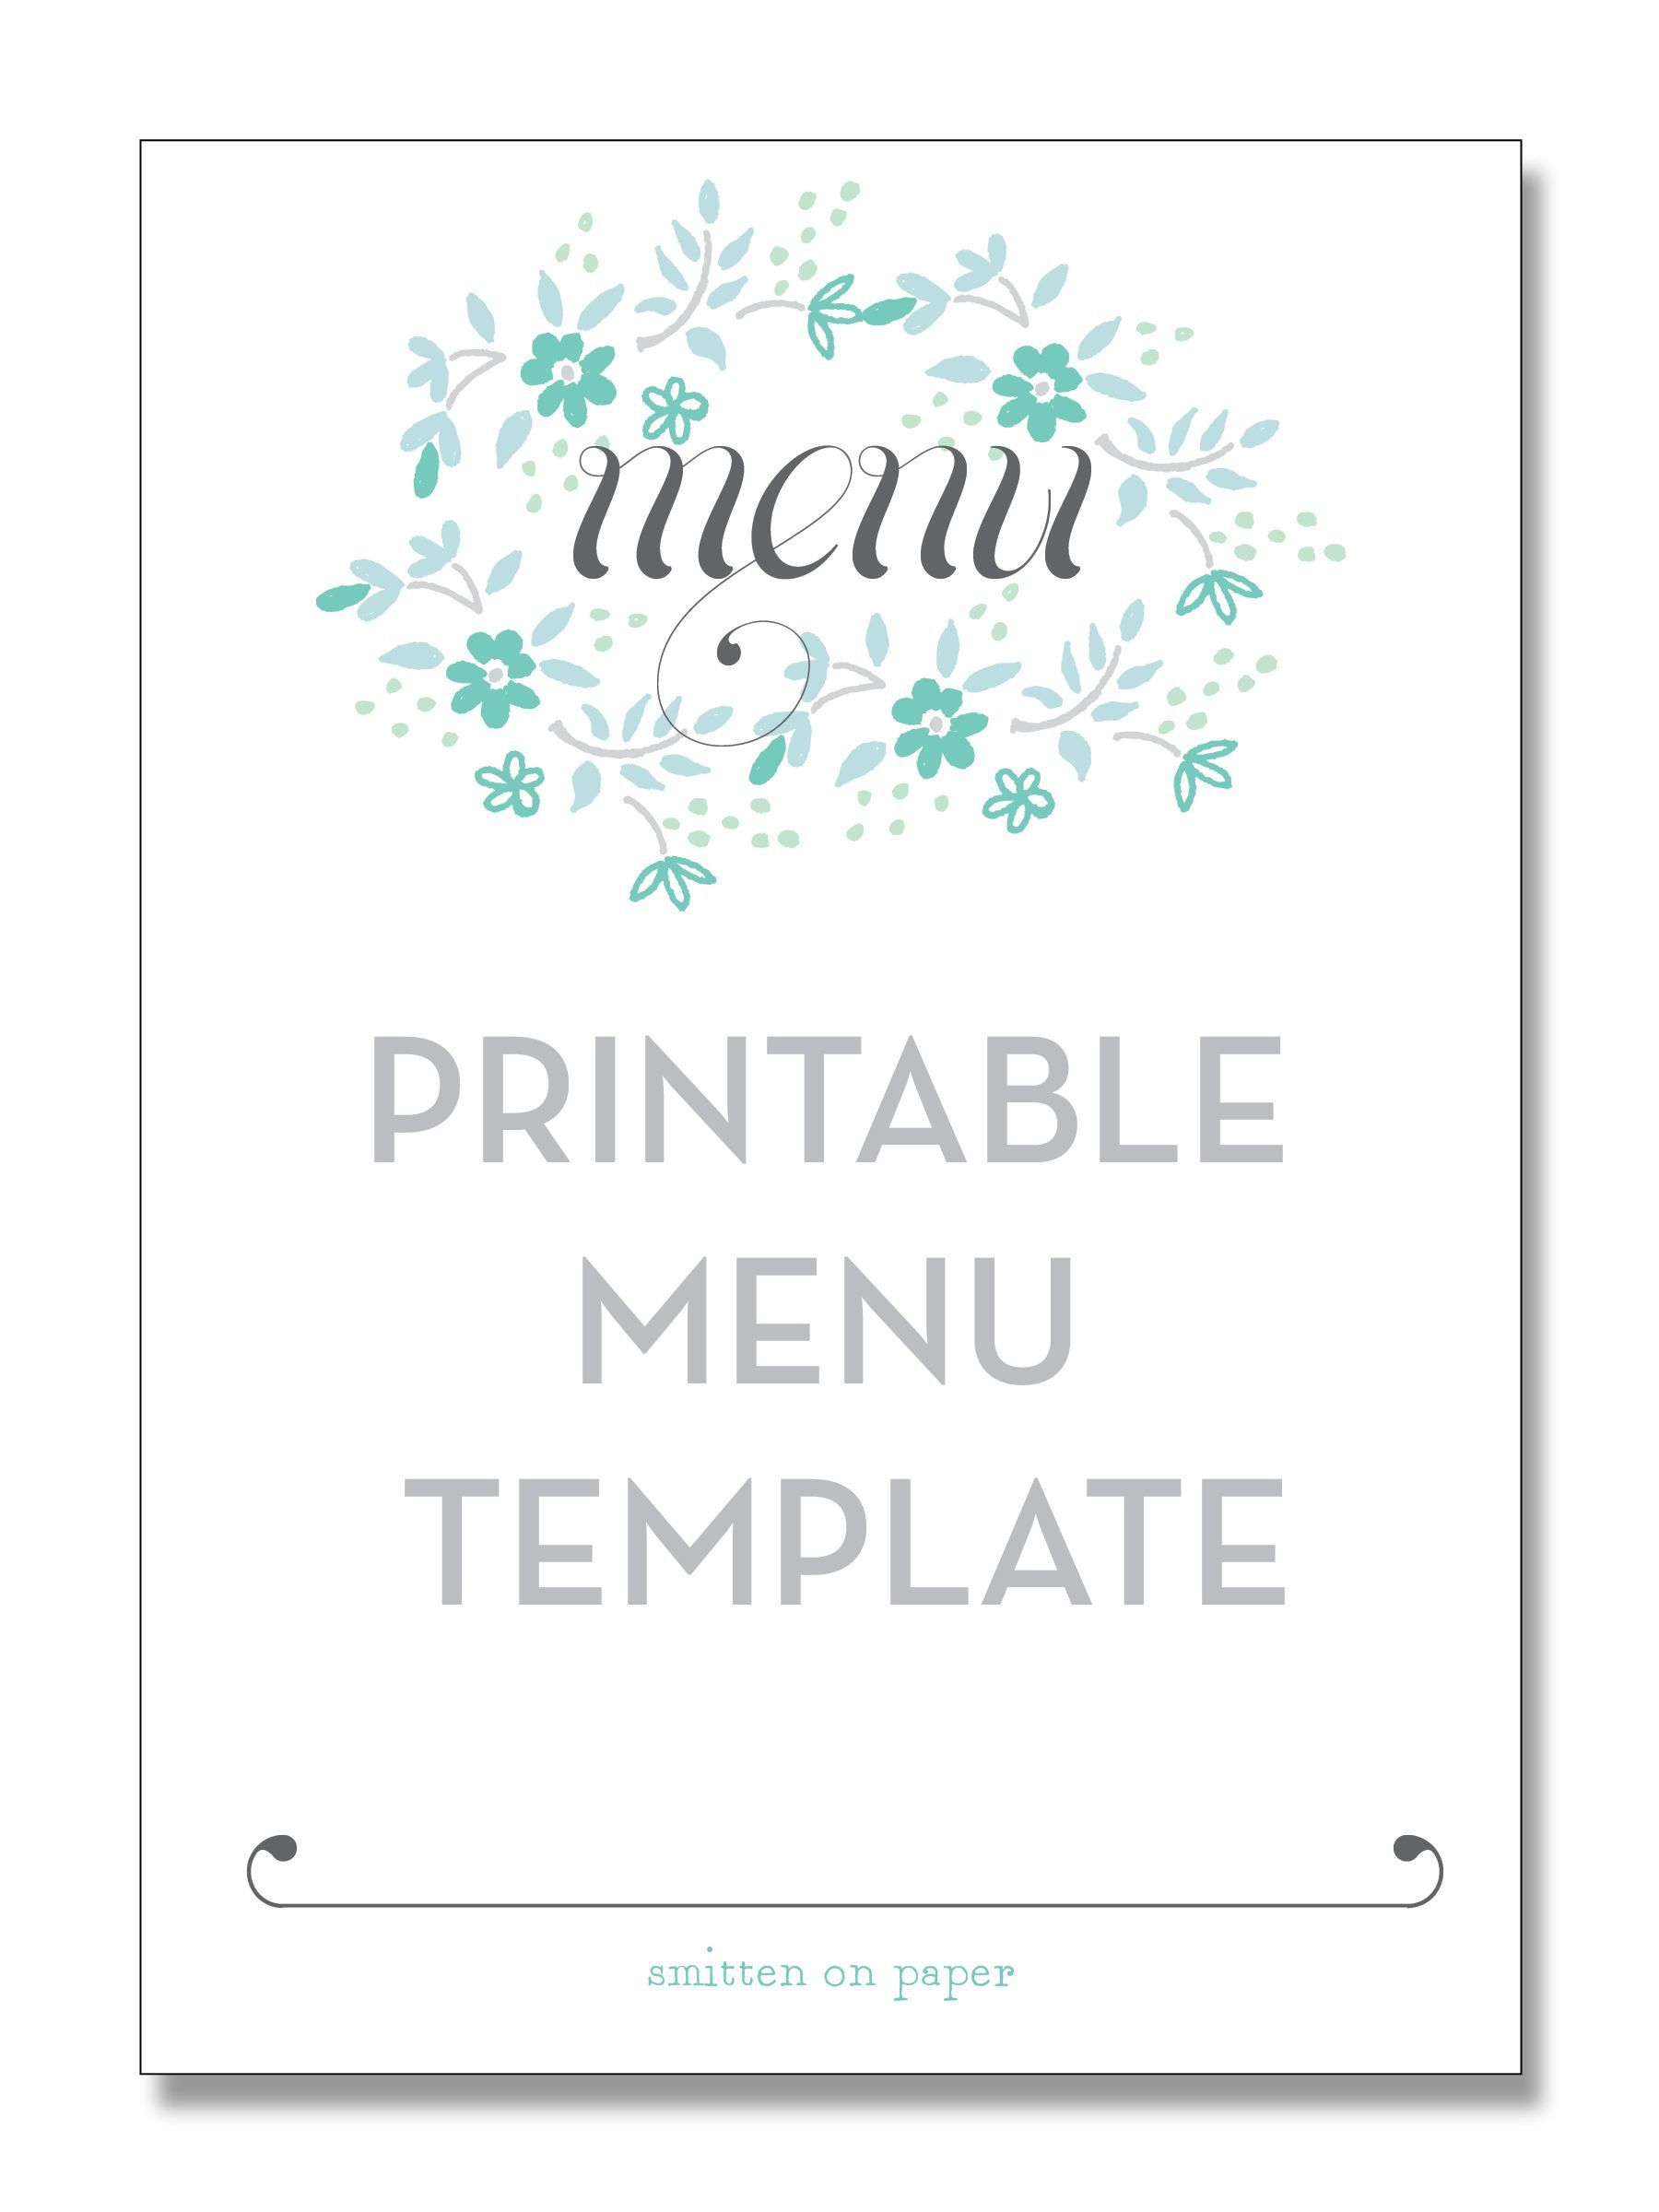 004 Phenomenal Free Printable Menu Template High Resolution  For Dinner Party FamilyFull